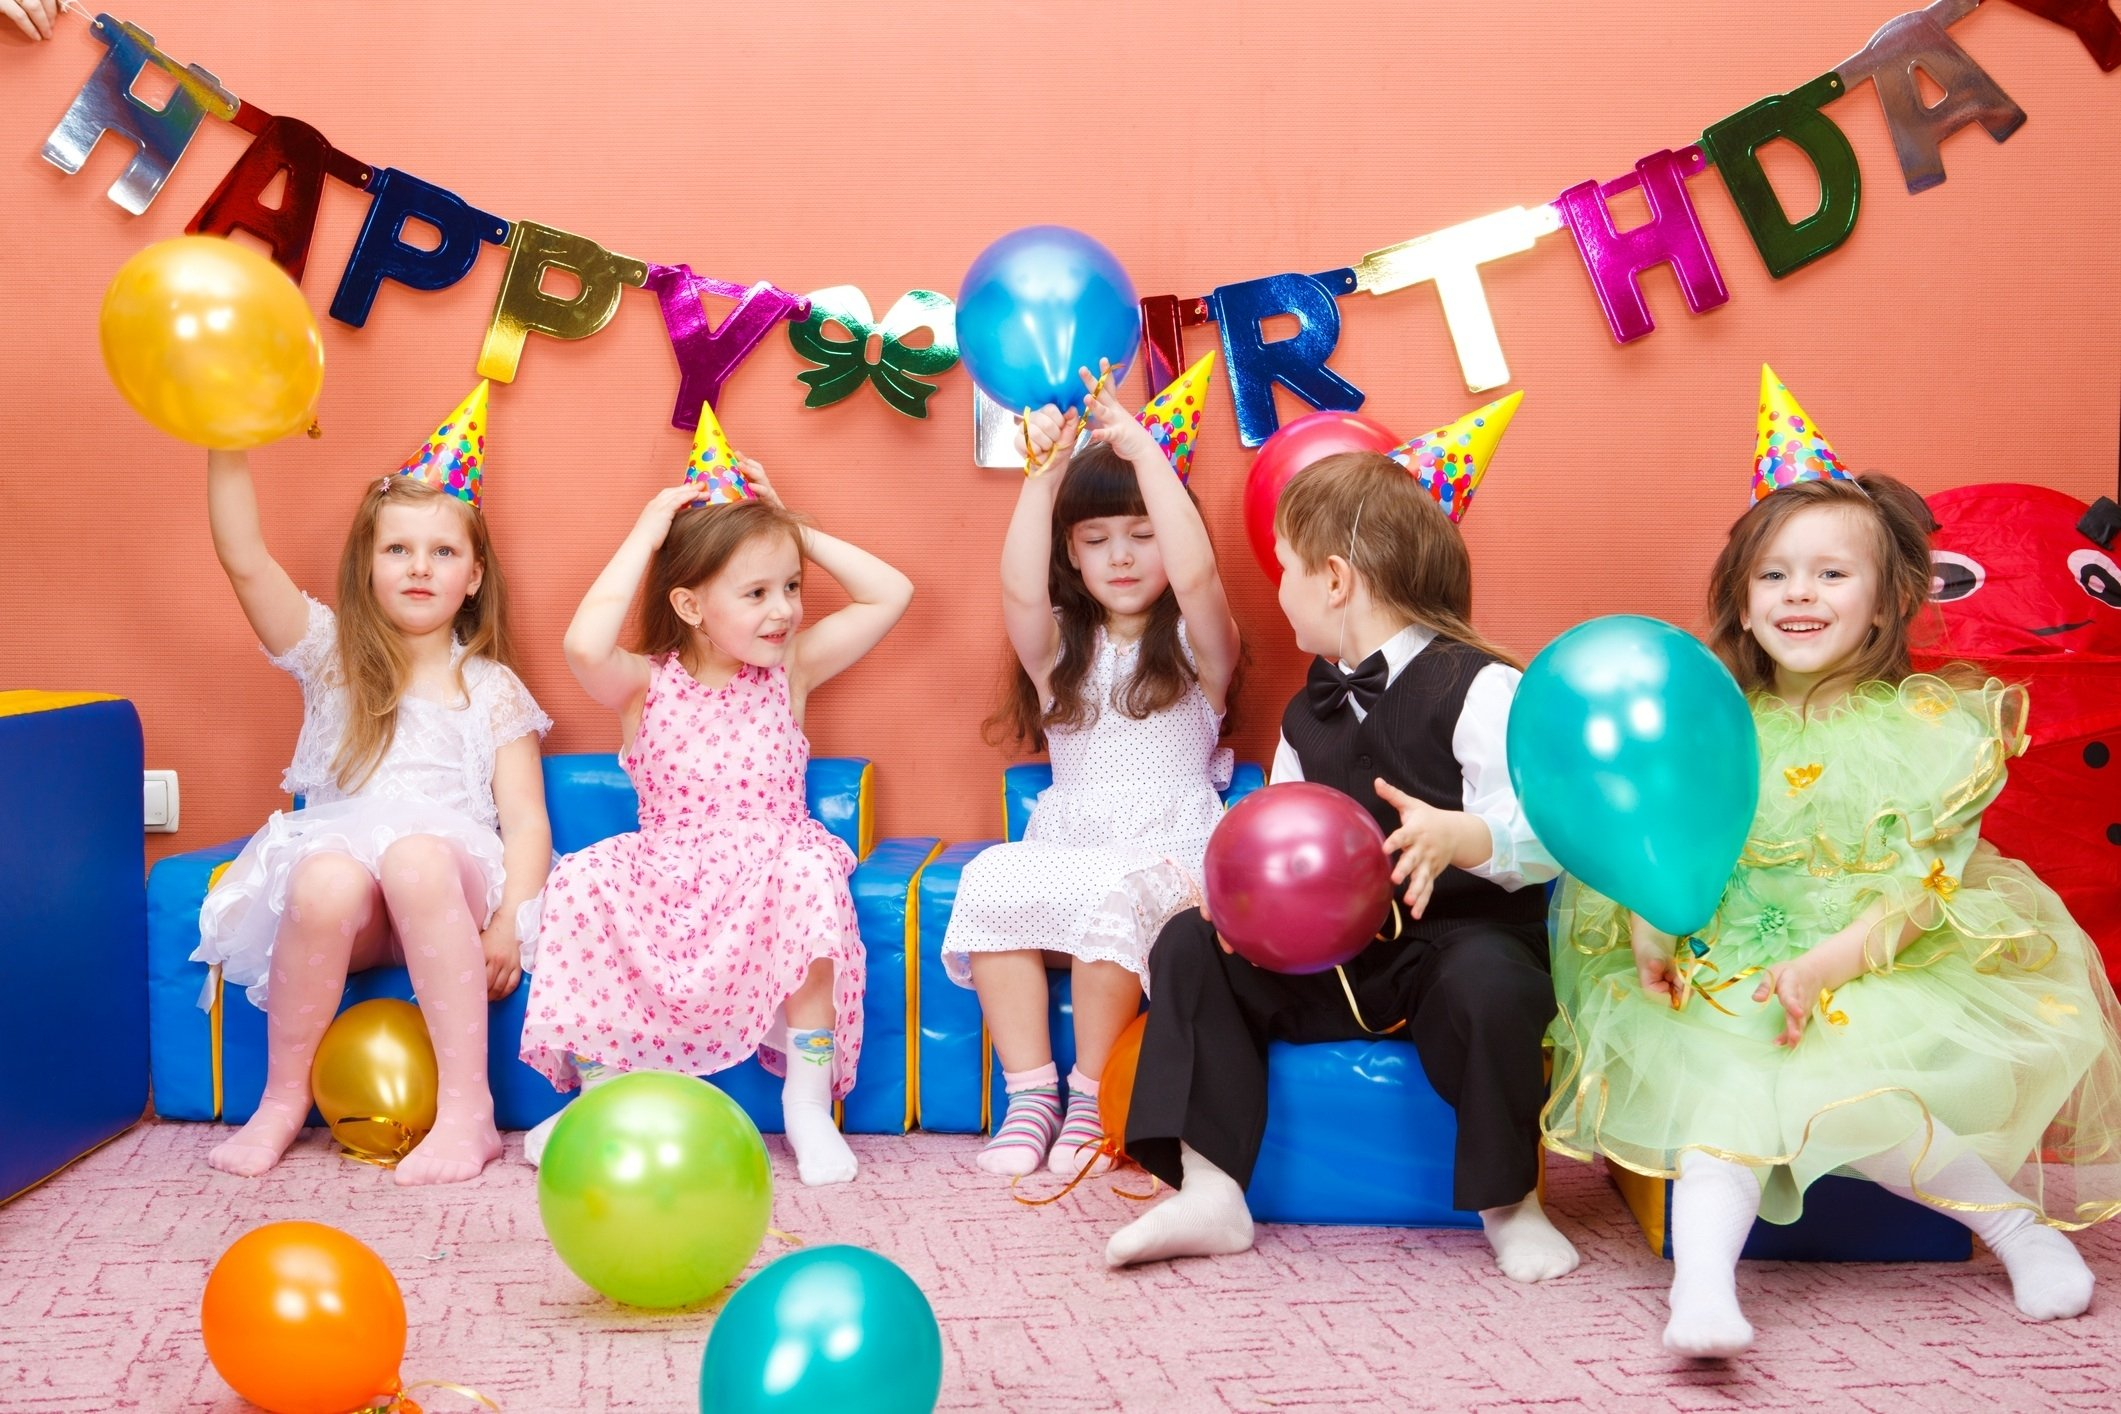 10 Lovely Ideas For 11 Year Old Birthday Party 45 awesome 11 12 year old birthday party ideas birthday inspire 12 2020